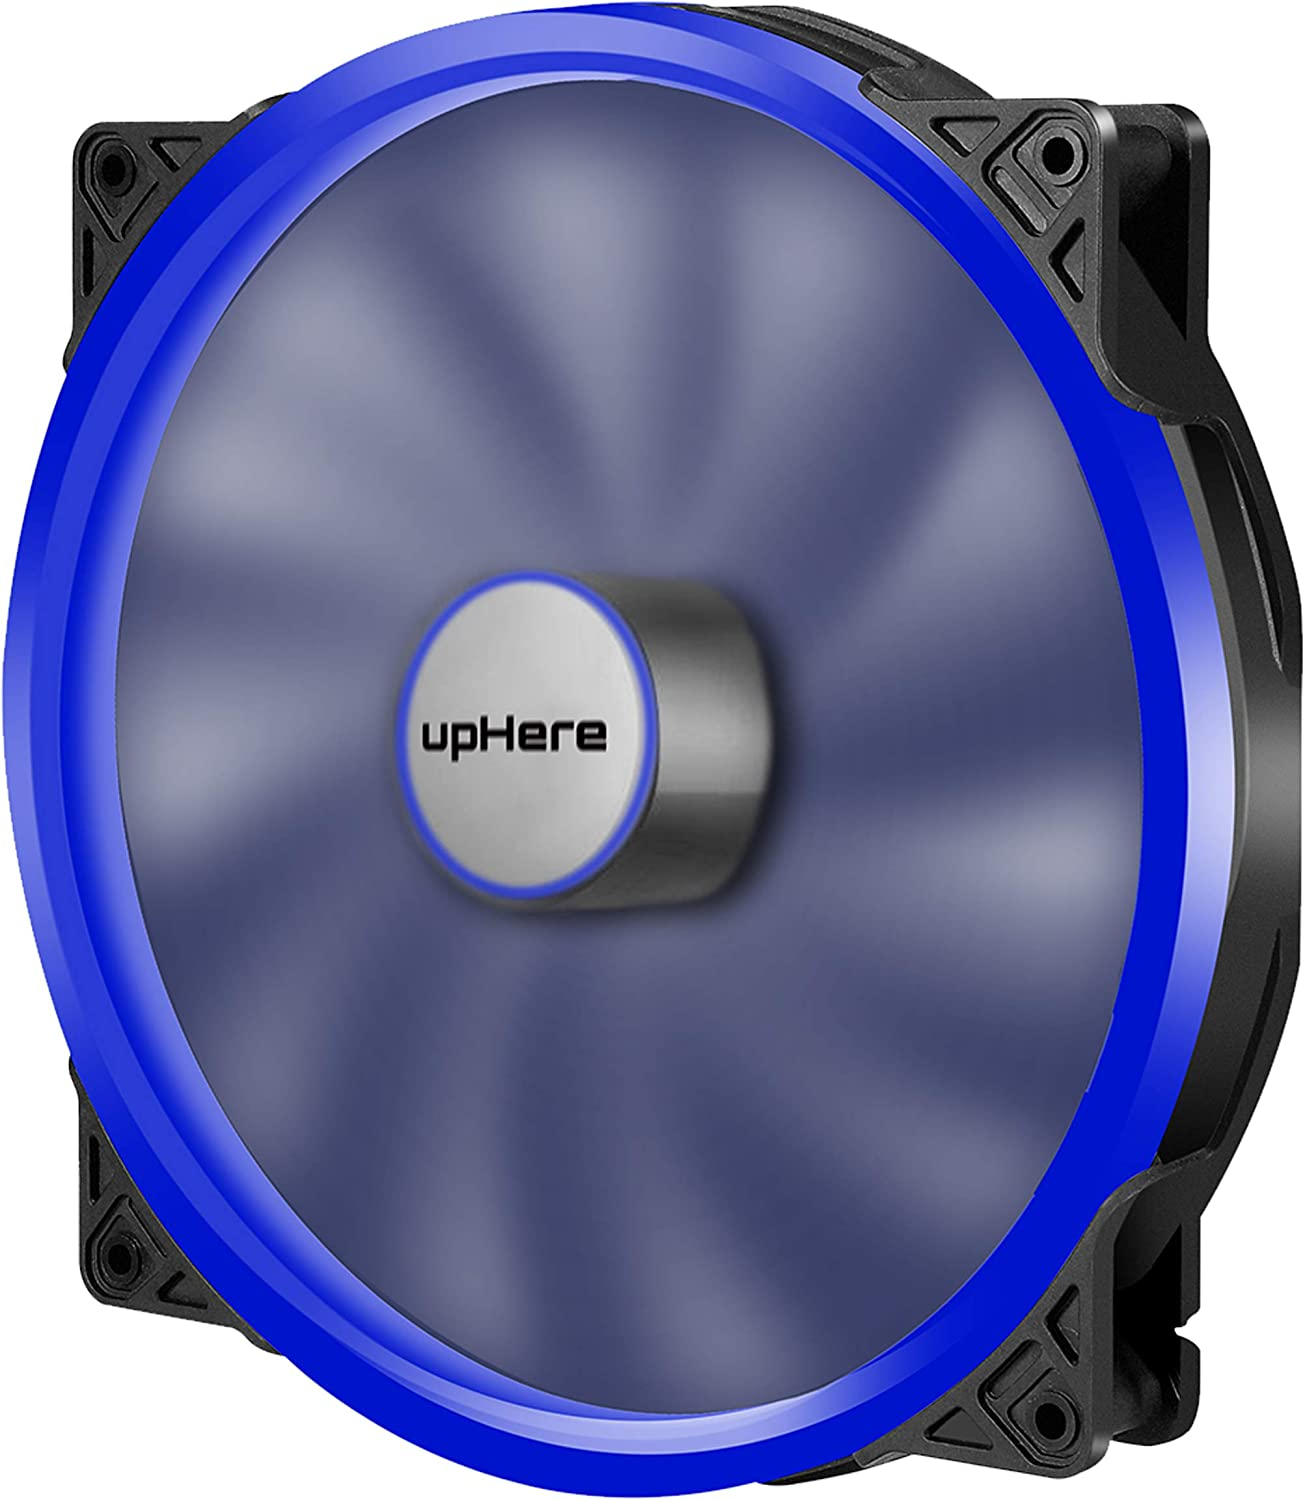 upHere P20 Series P200BE-Hydraulic Bearing 200mm Silent Blue LED Computer Case Fan,P200BE